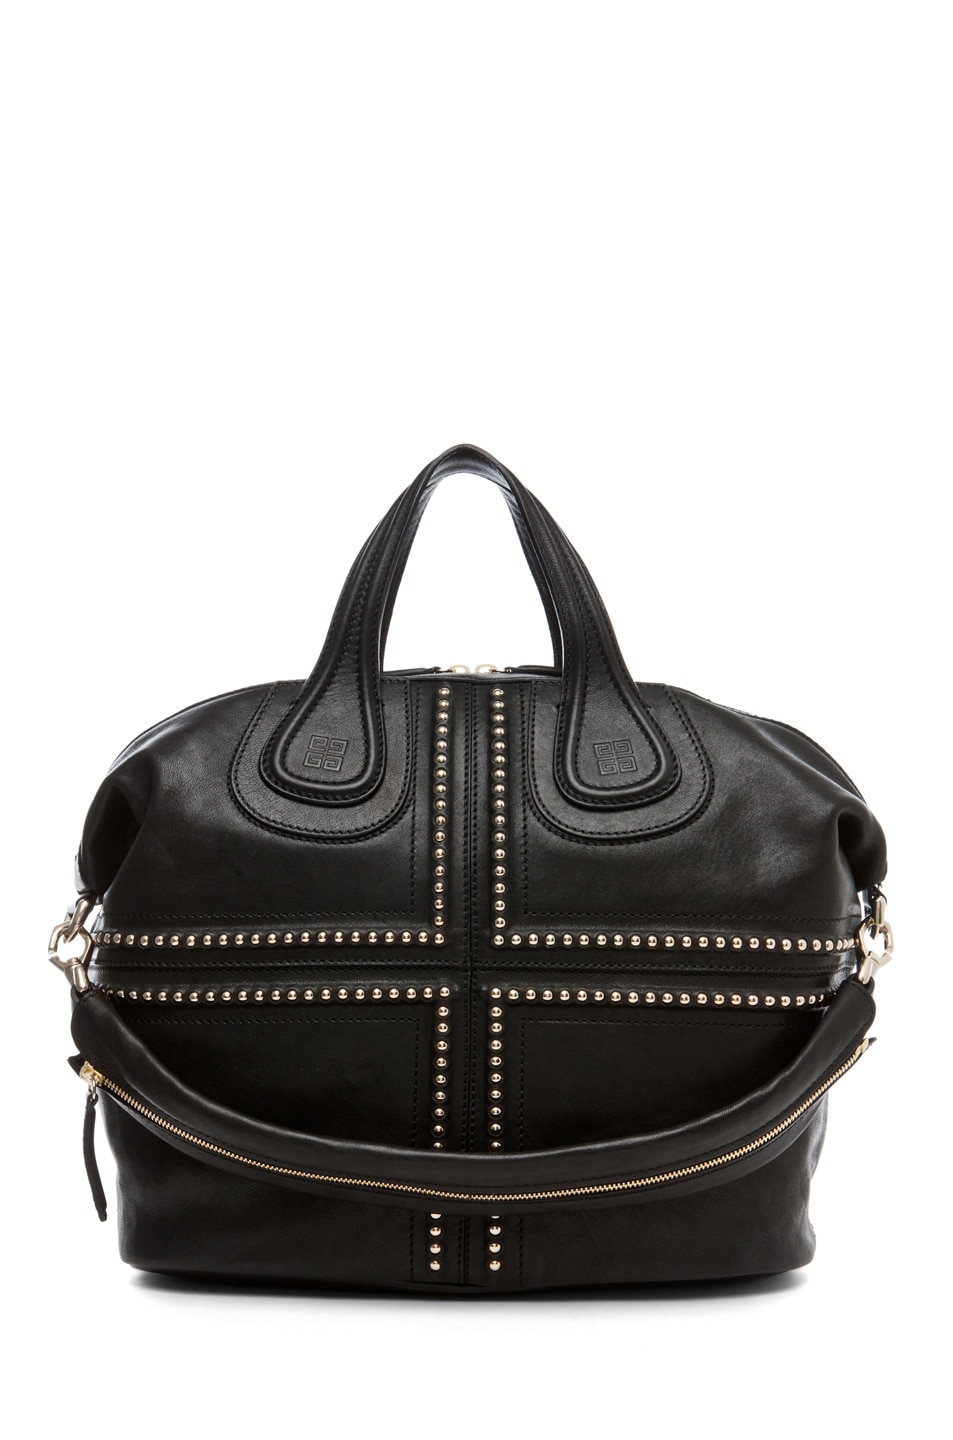 Image 1 of GIVENCHY Nightingale Medium Studded in Black